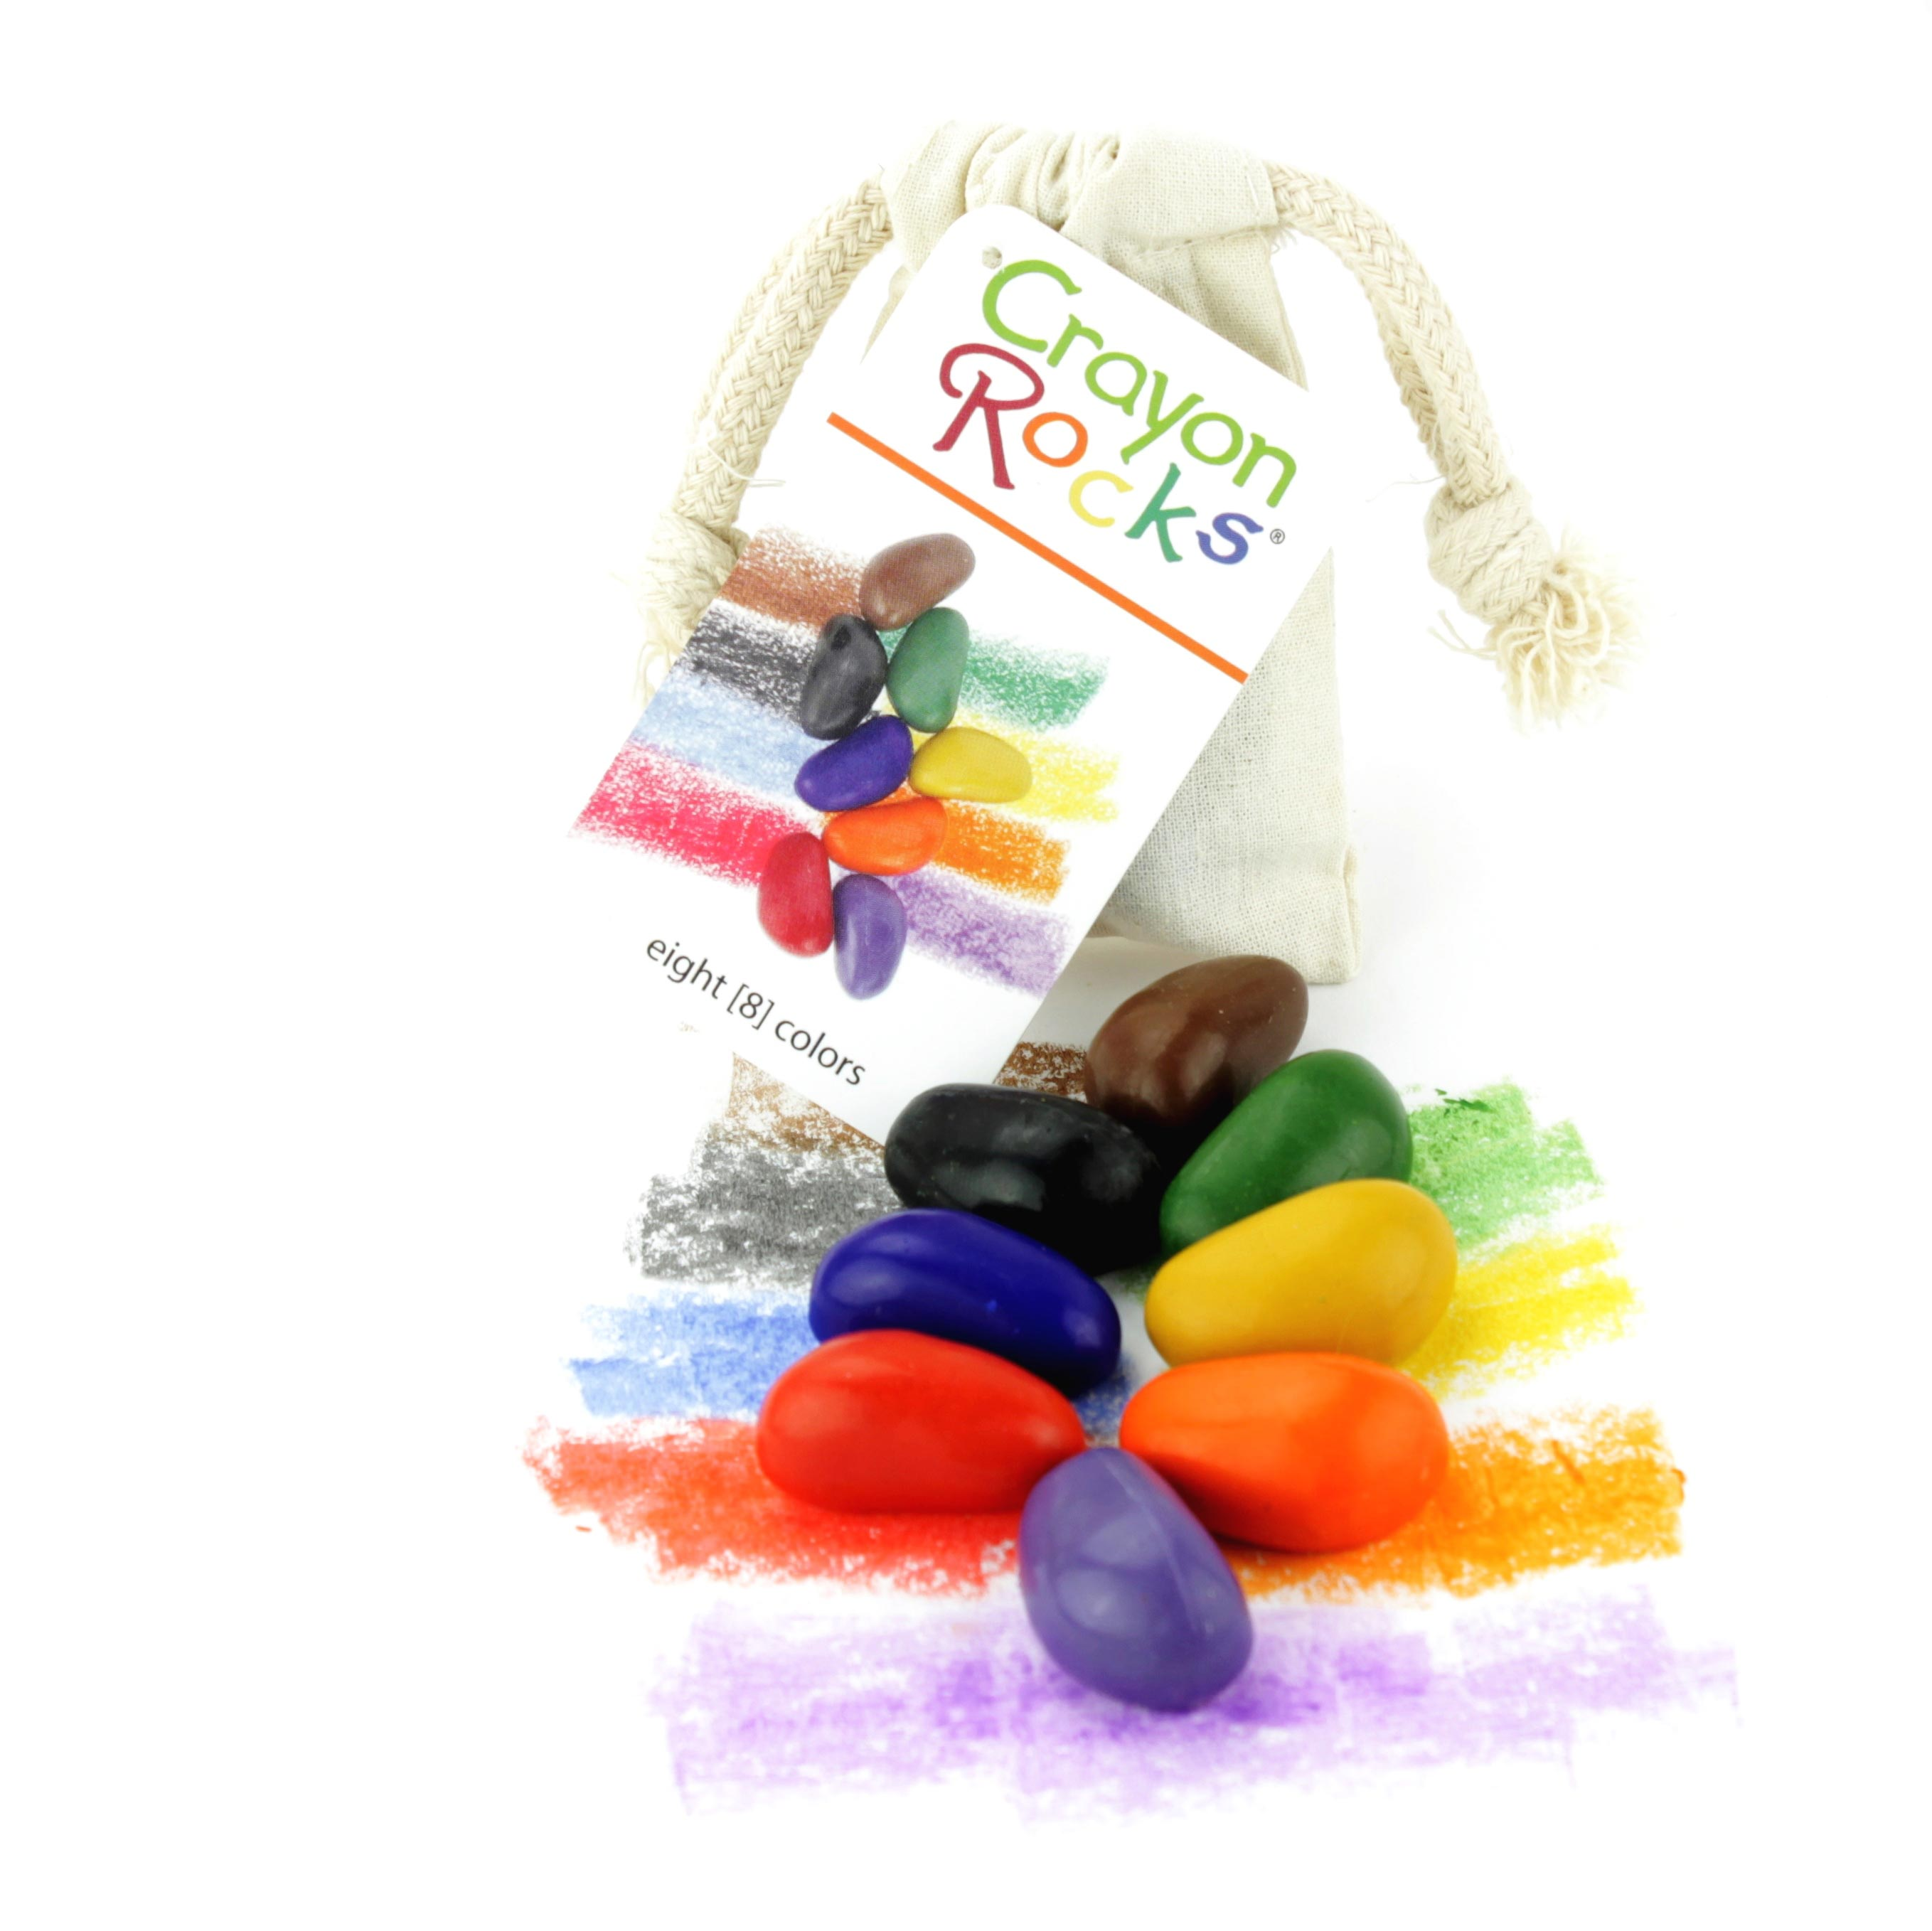 8 Crayon Rocks Bag